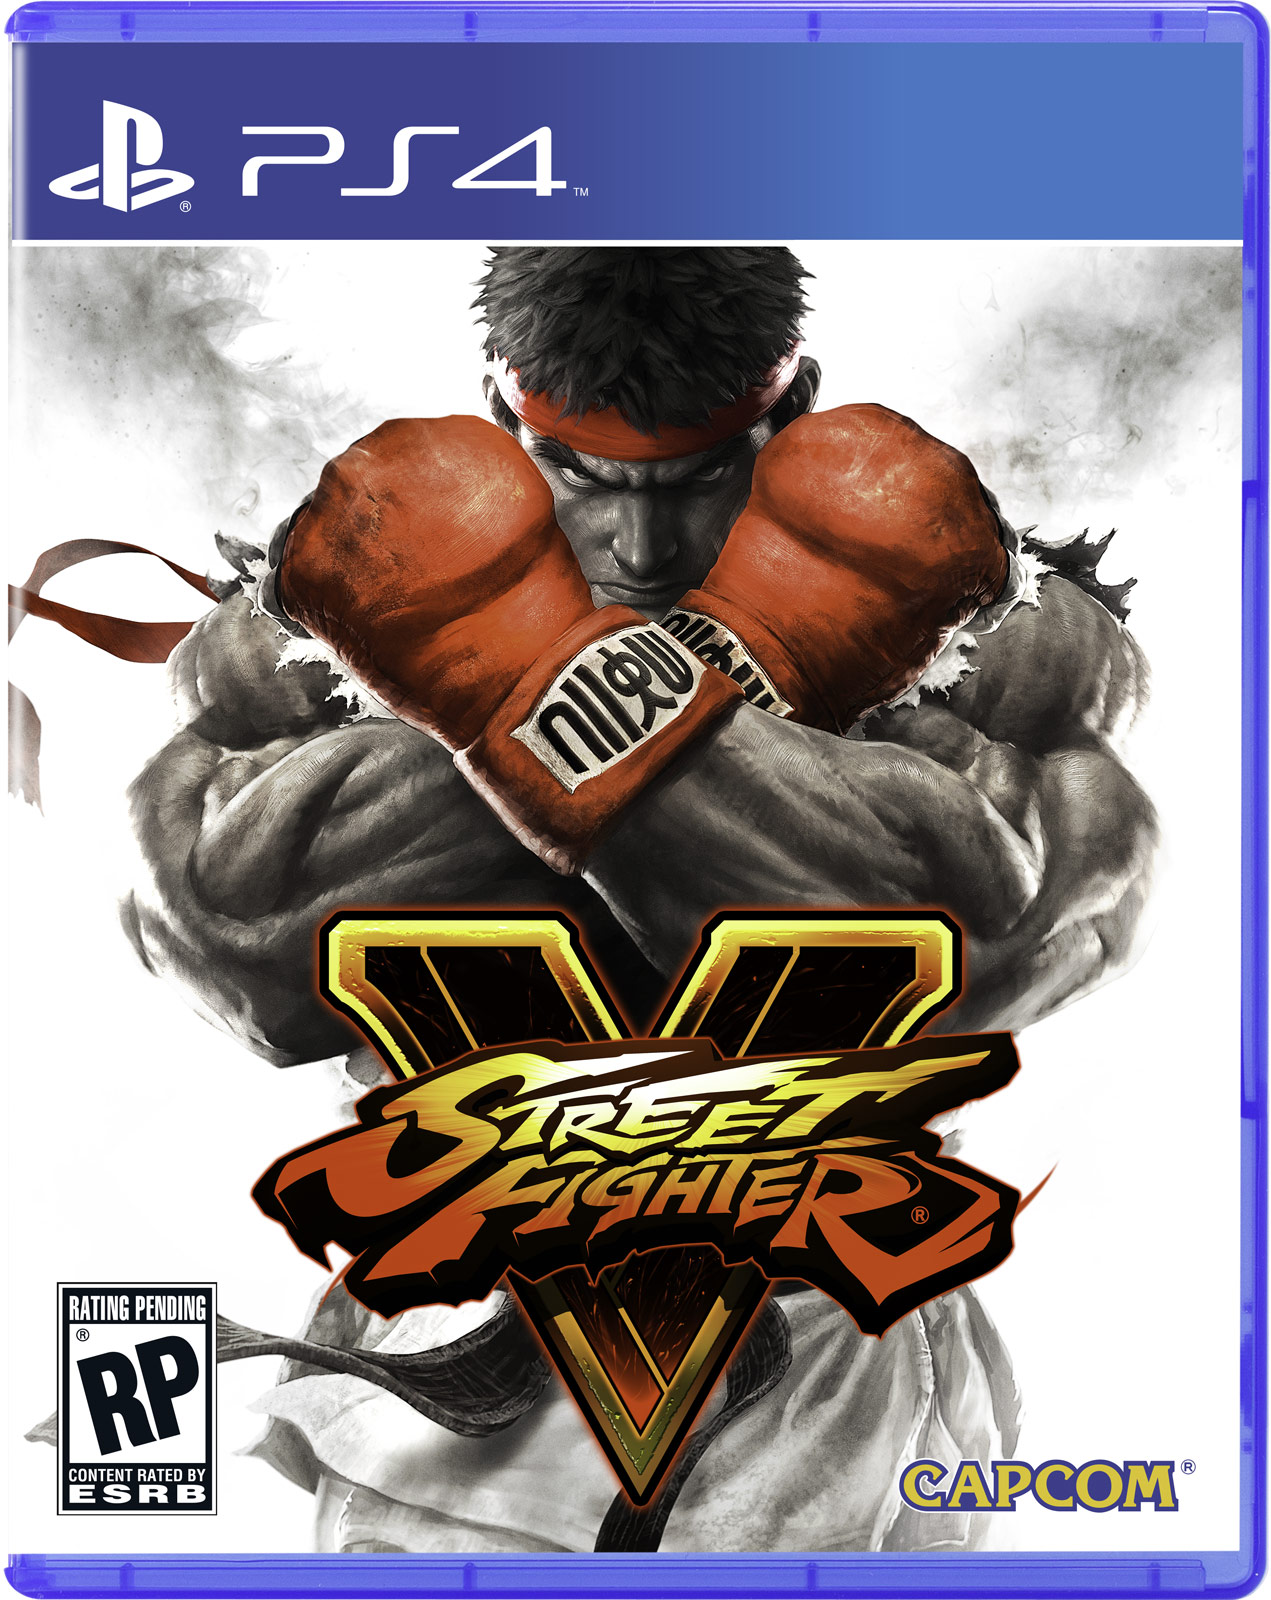 Street Fighter 5 high resolution screen shots, cover art and logo image #7